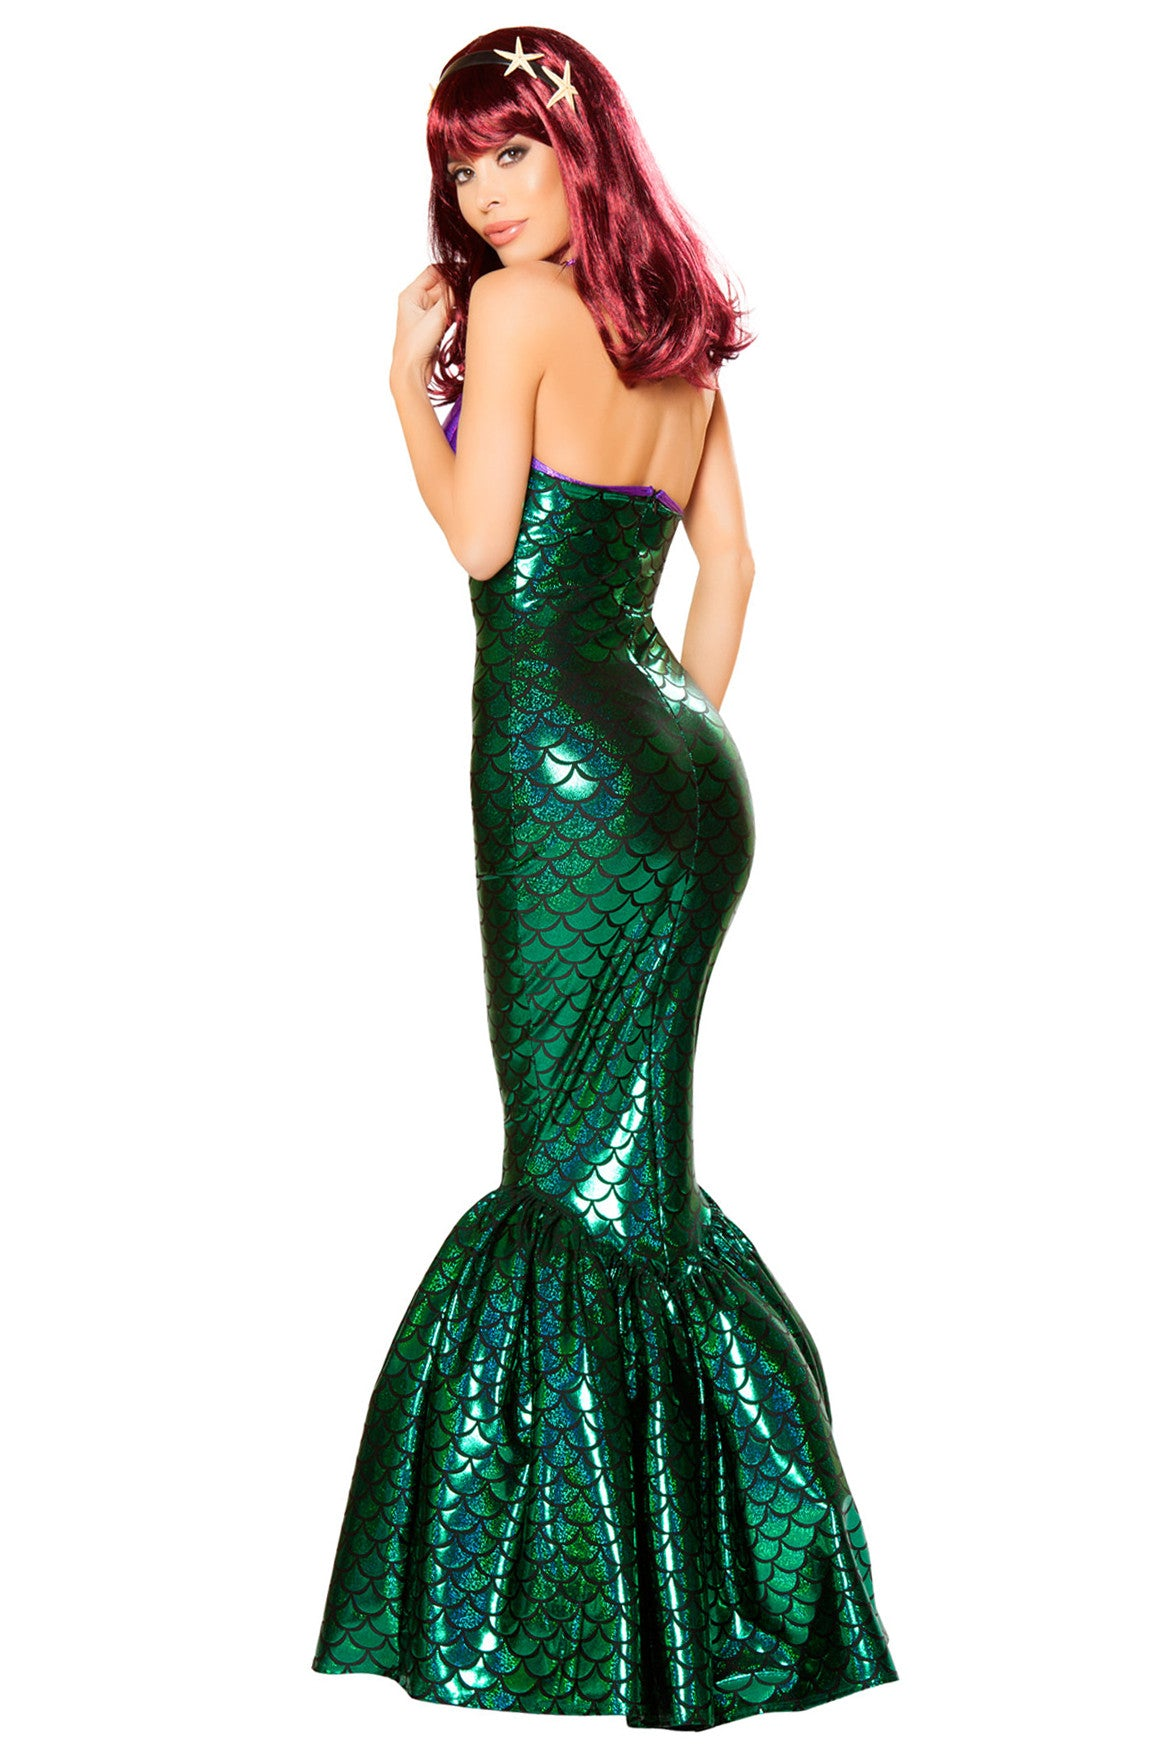 Mermaid Siren